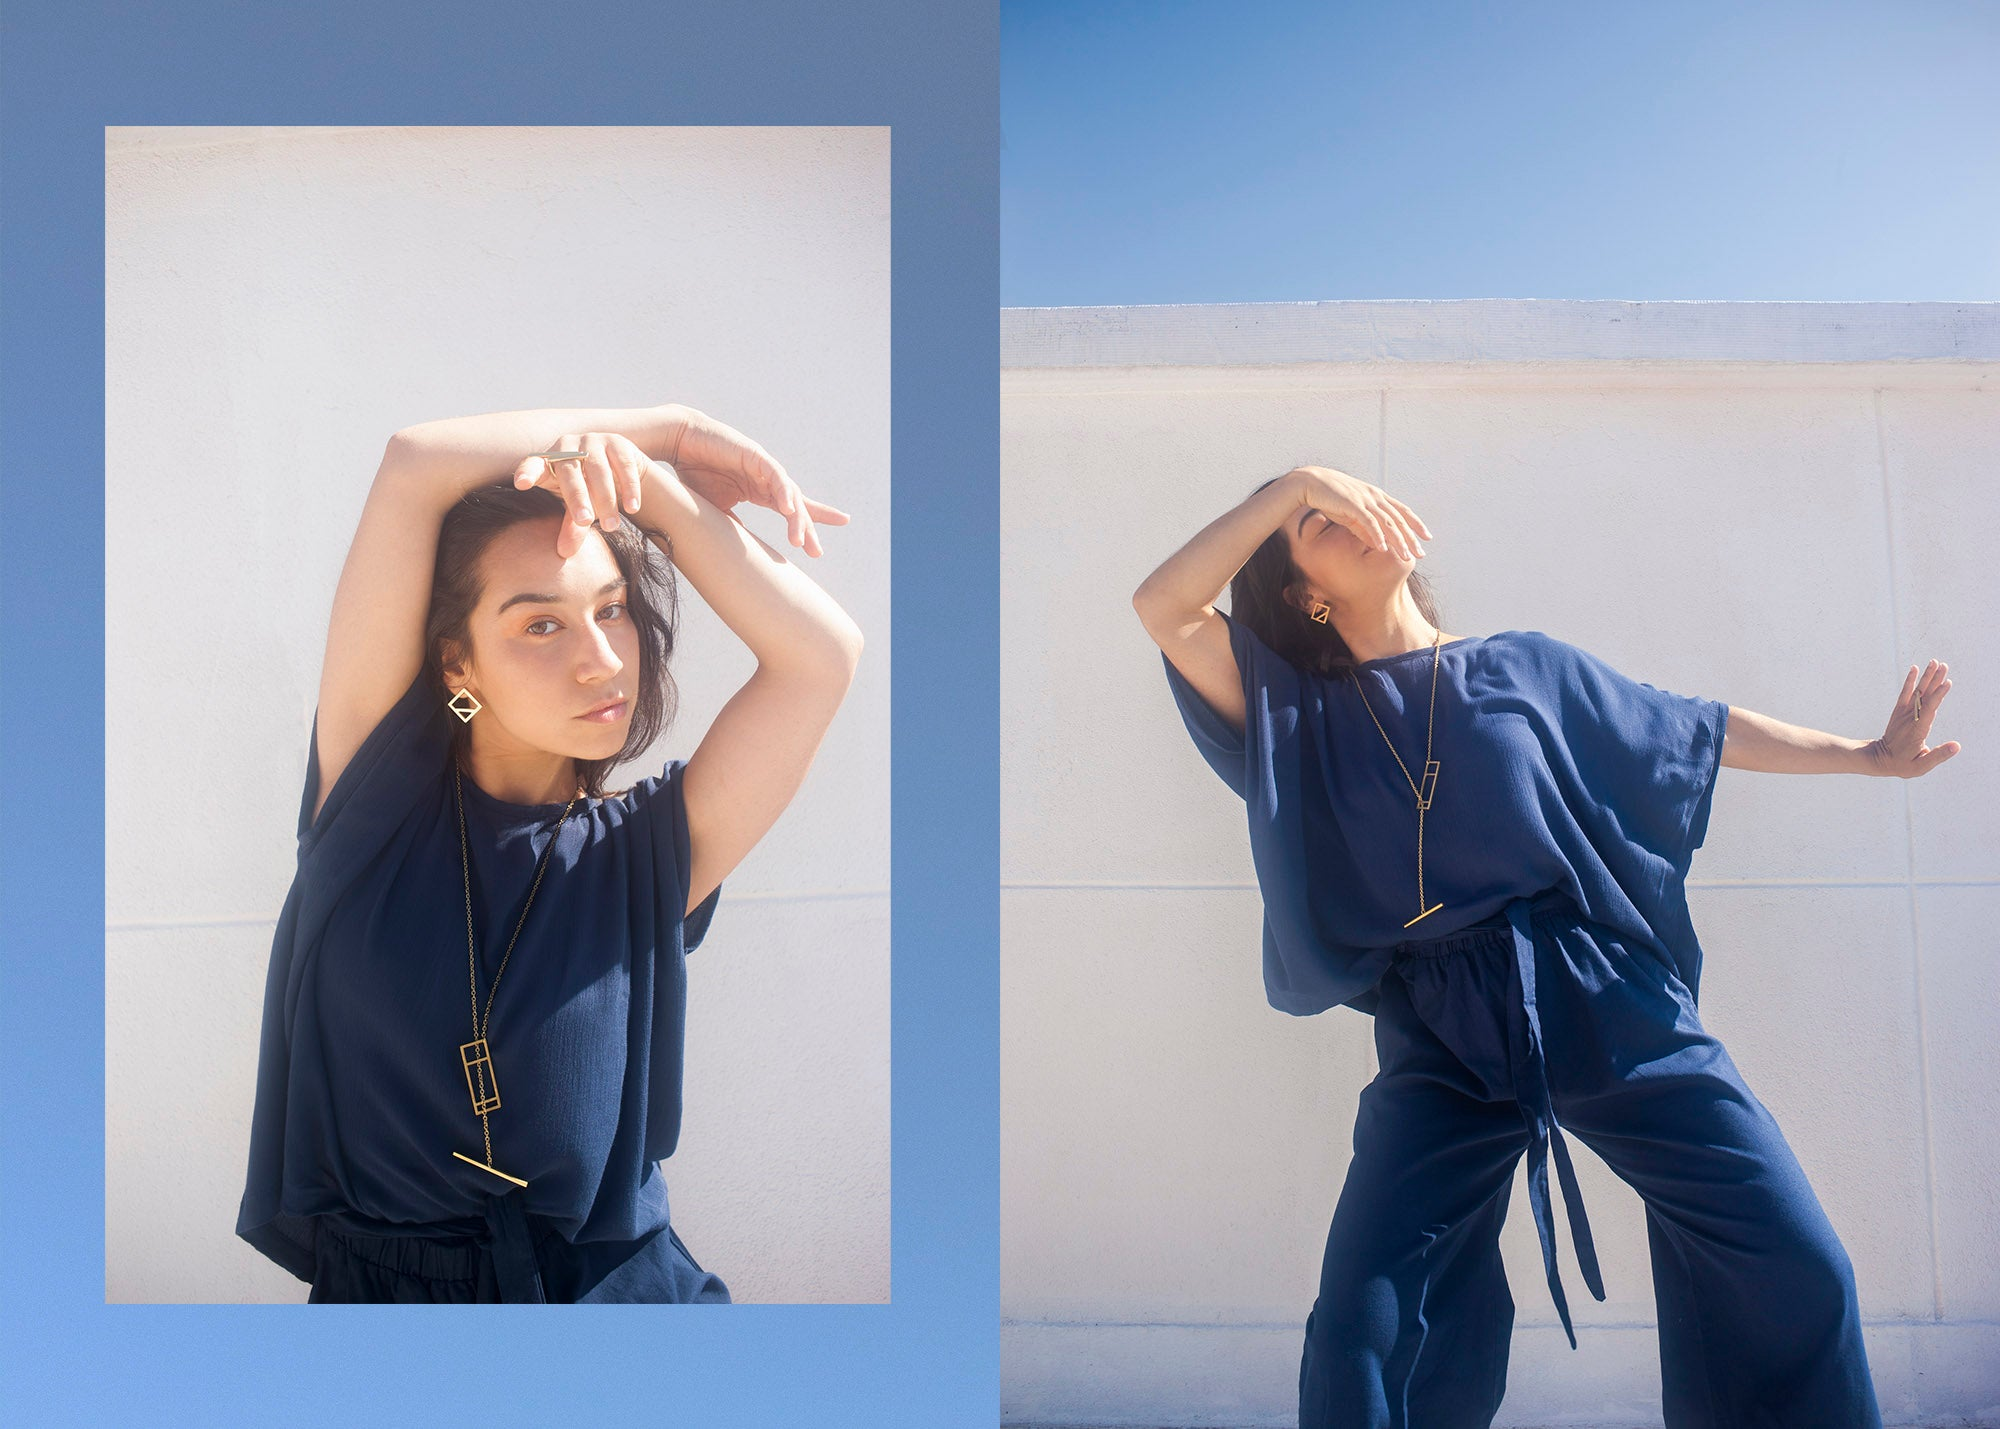 Woman standing in front of a blue sky and white wall dancing, wearing a royal blue loose cut sustainable top and pants